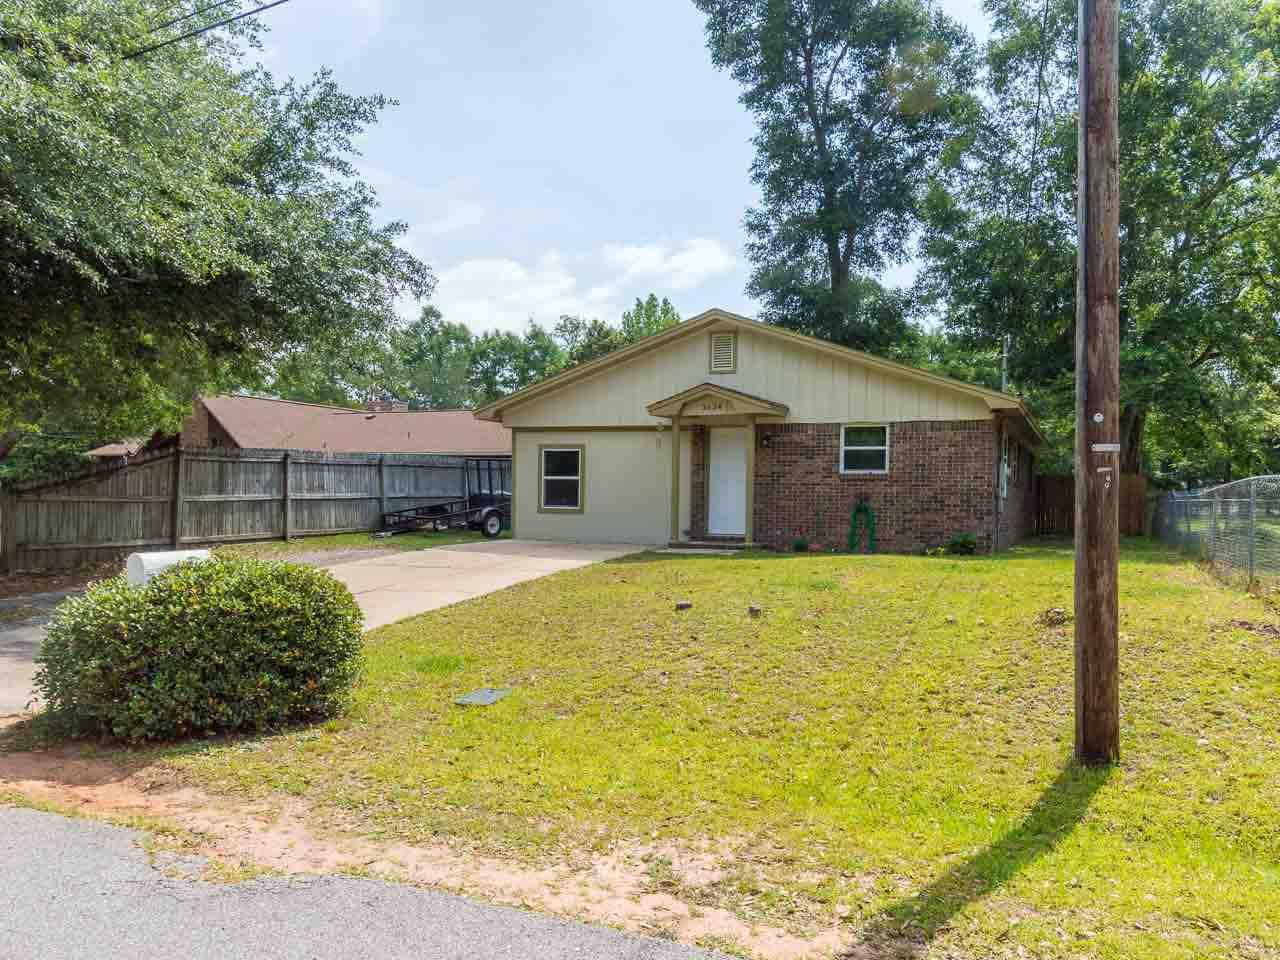 3034 N 17TH AVE, MILTON, FL 32583